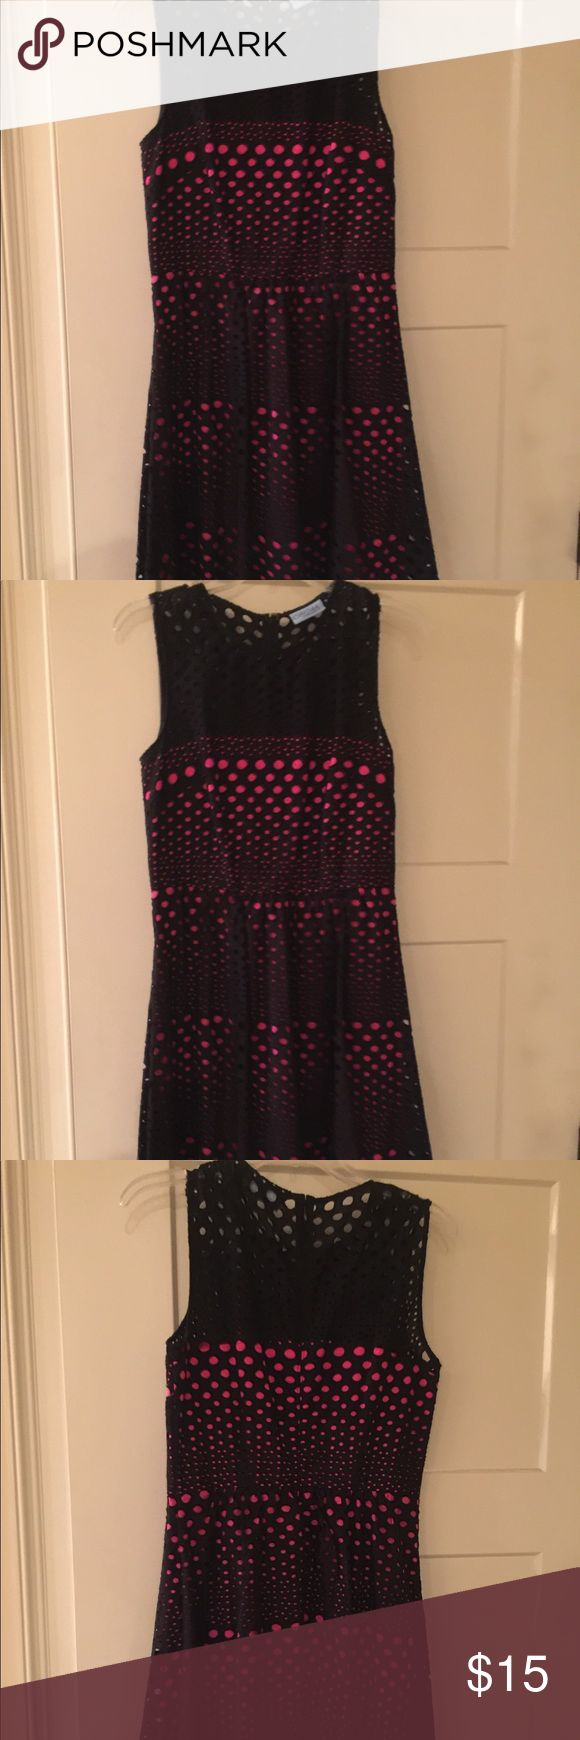 """Cynthia Rowley Black eyelet lace dress Black eyelet dress with hot pink lining. Hits just above the knee on height of a 5'4"""" person. Dresses Midi"""